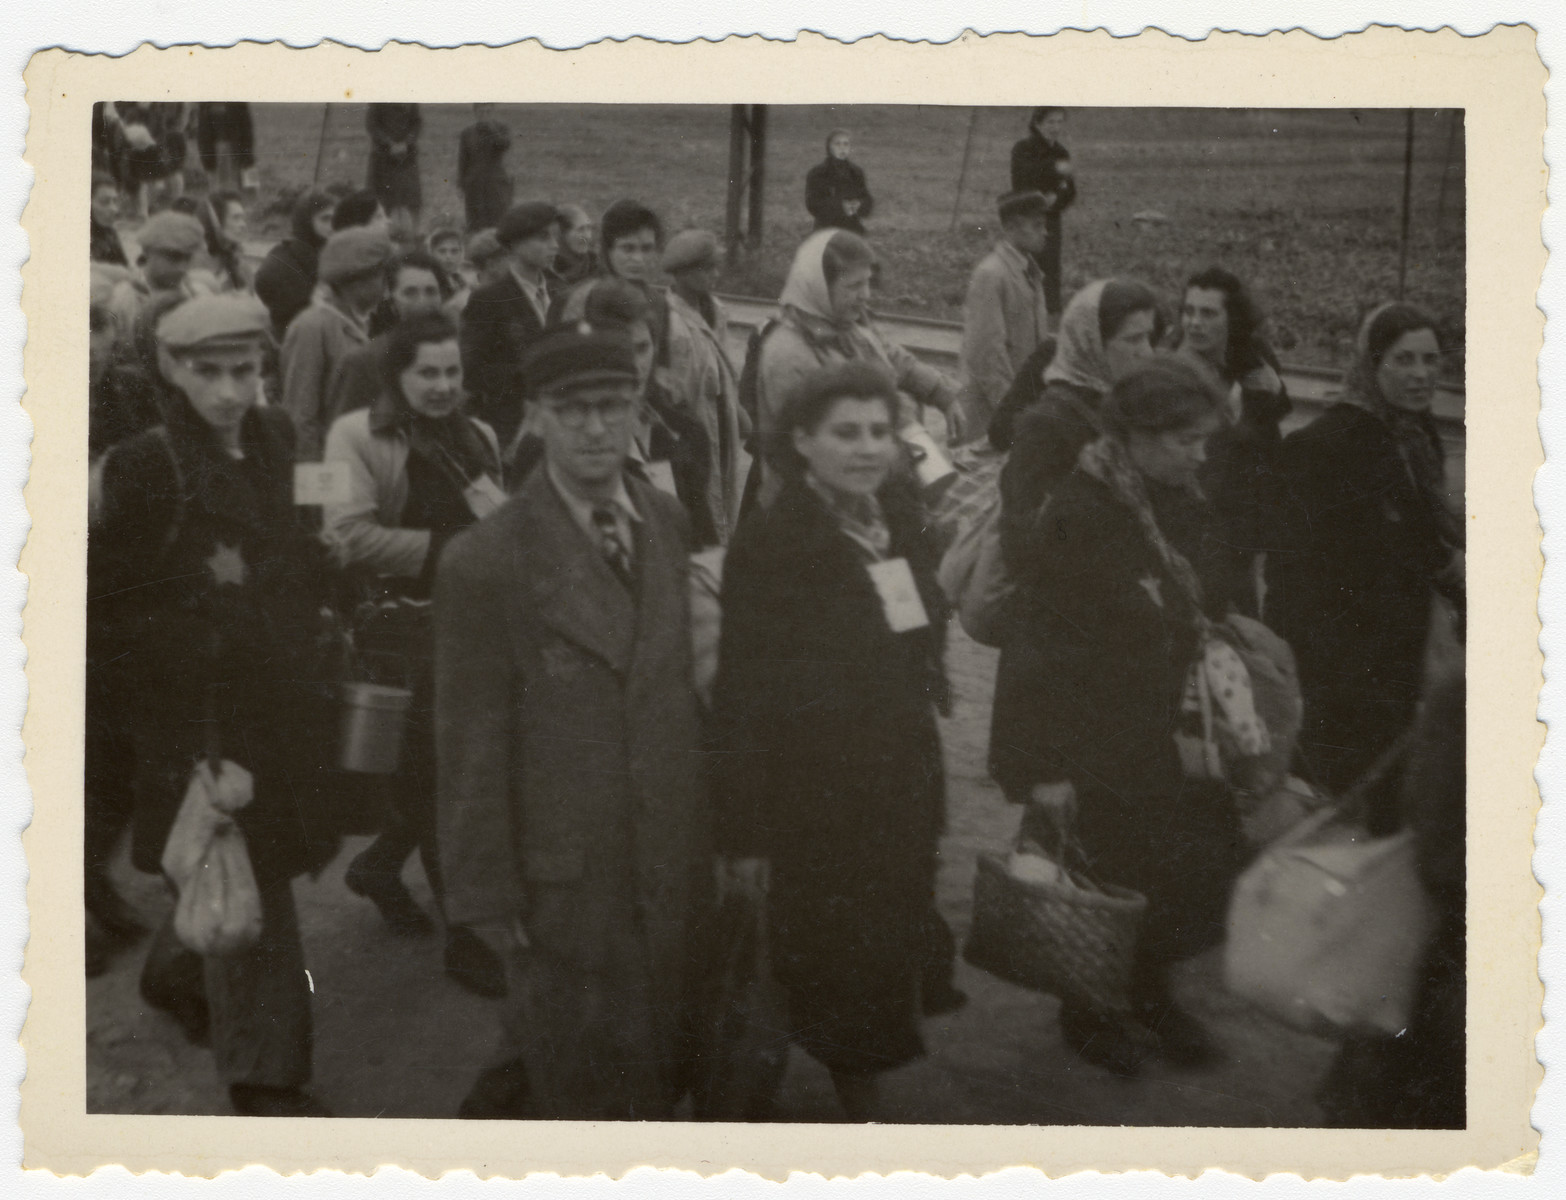 Jewish police escort a column of Jews to an assembly point in the Lodz ghetto.